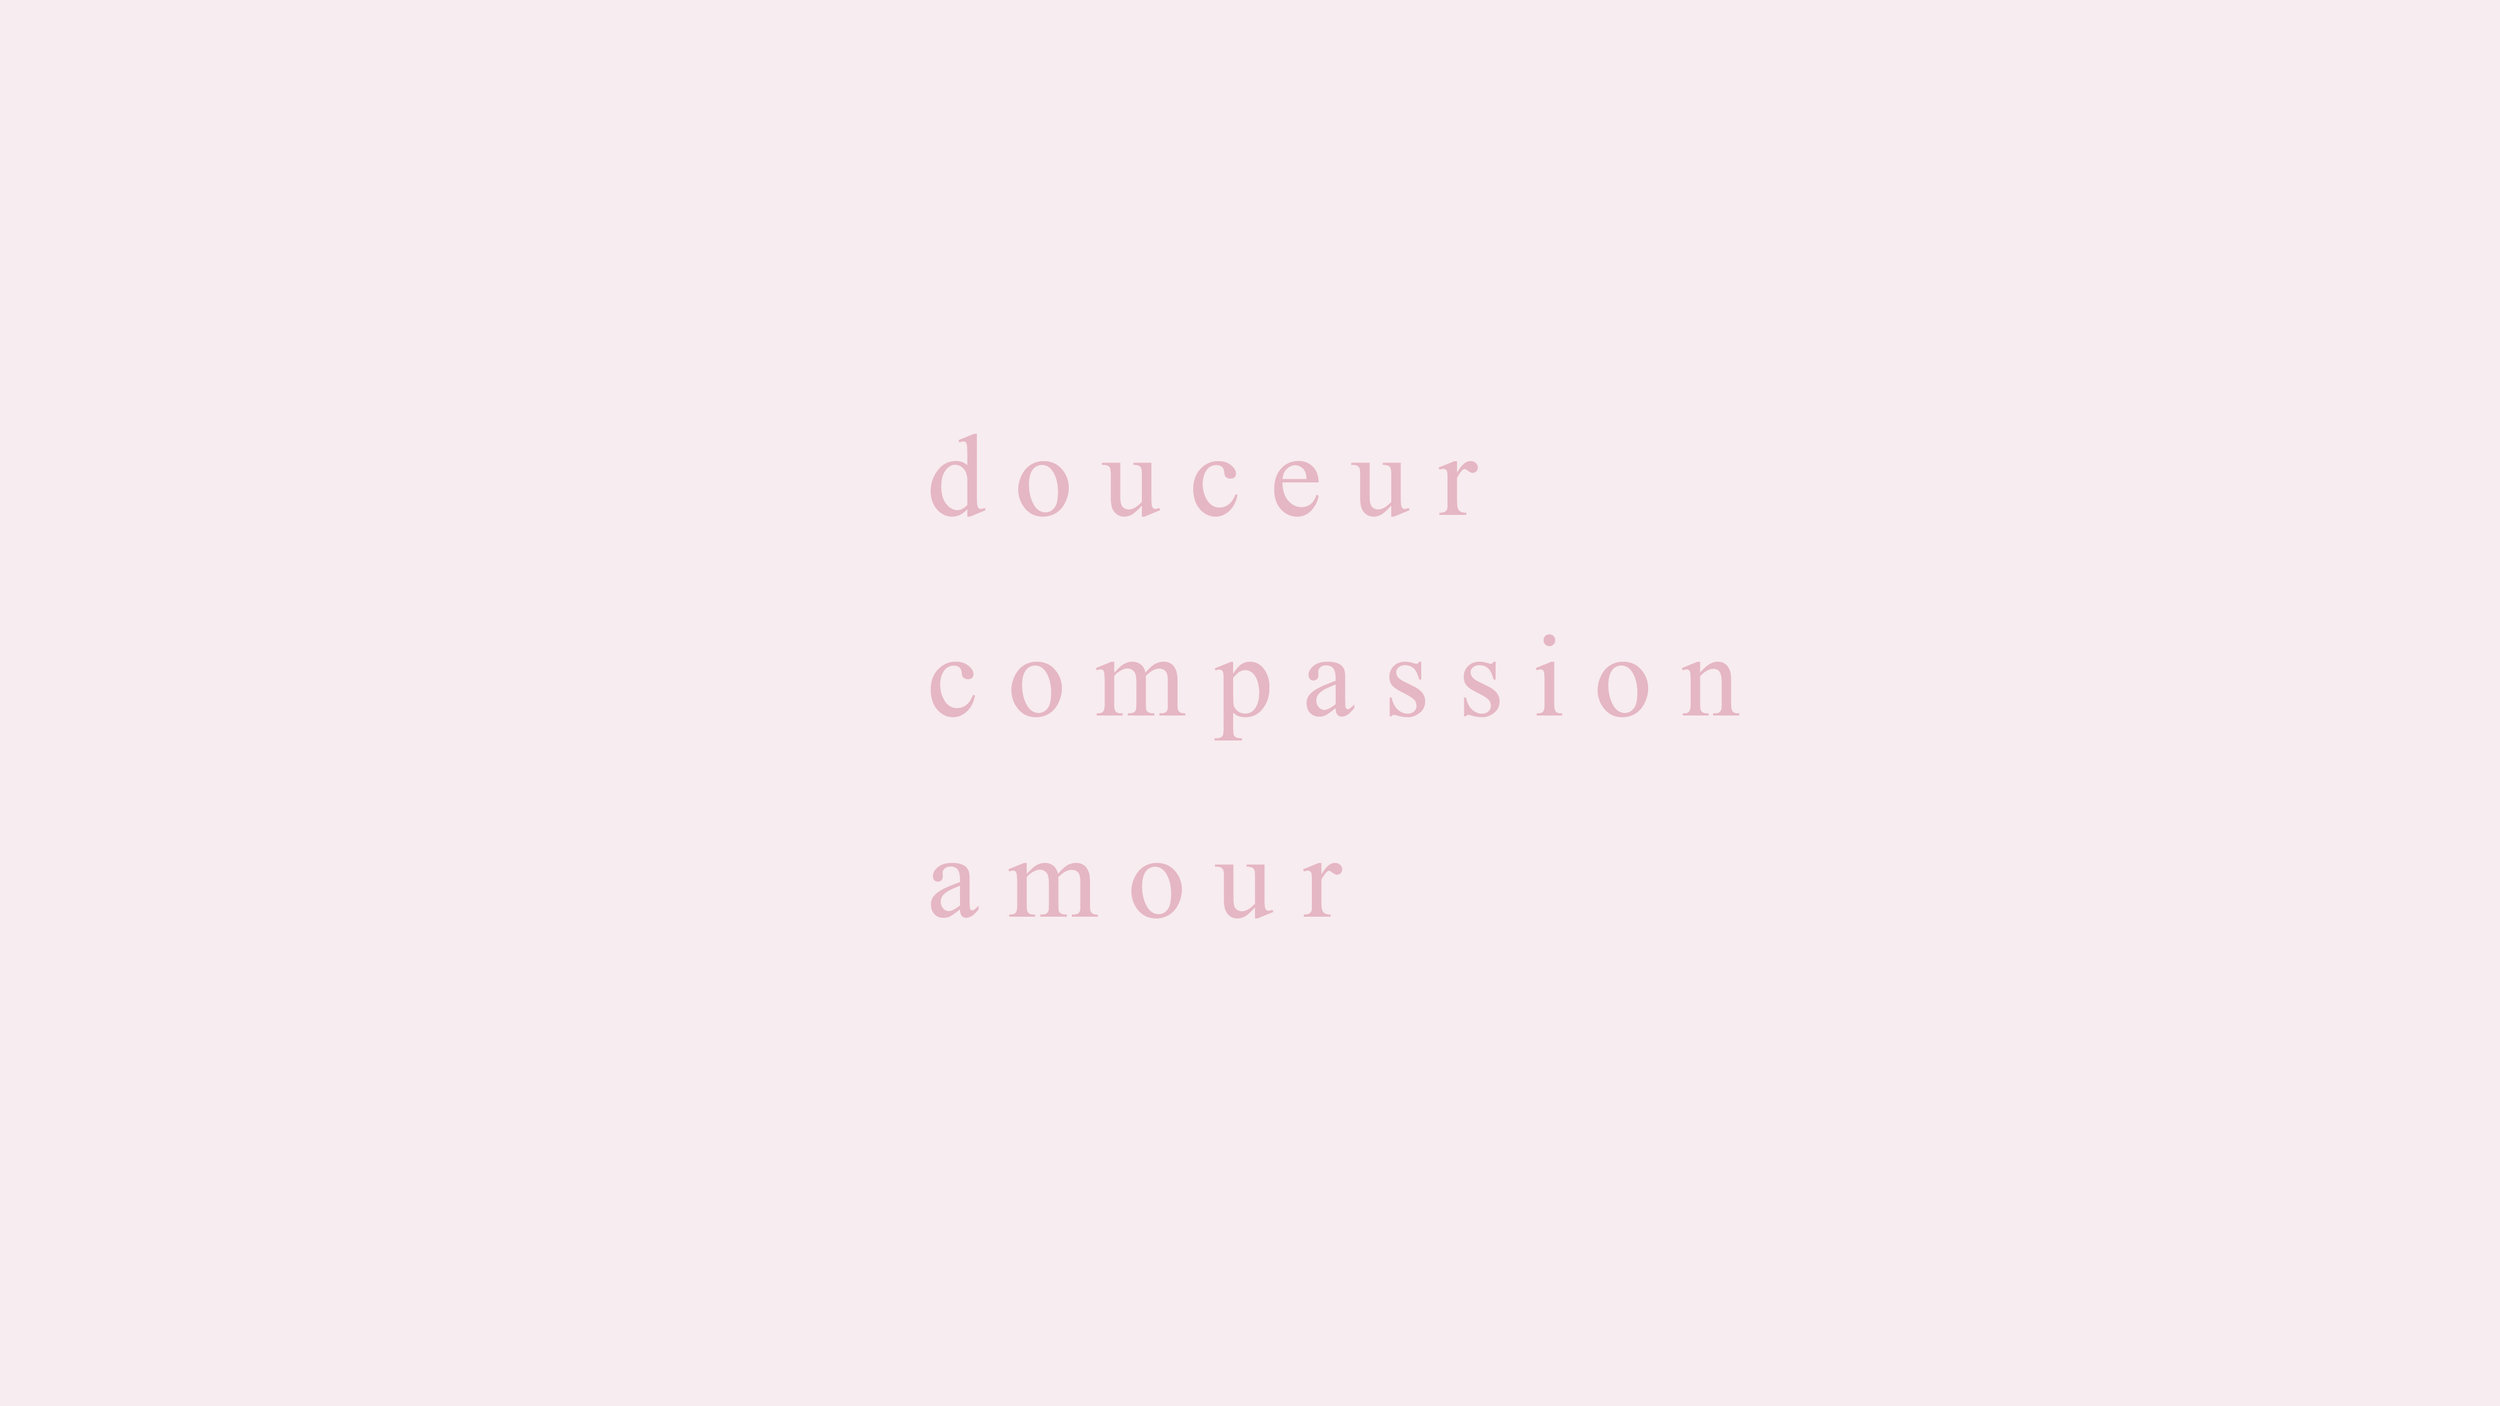 douceur. compassion. amour.